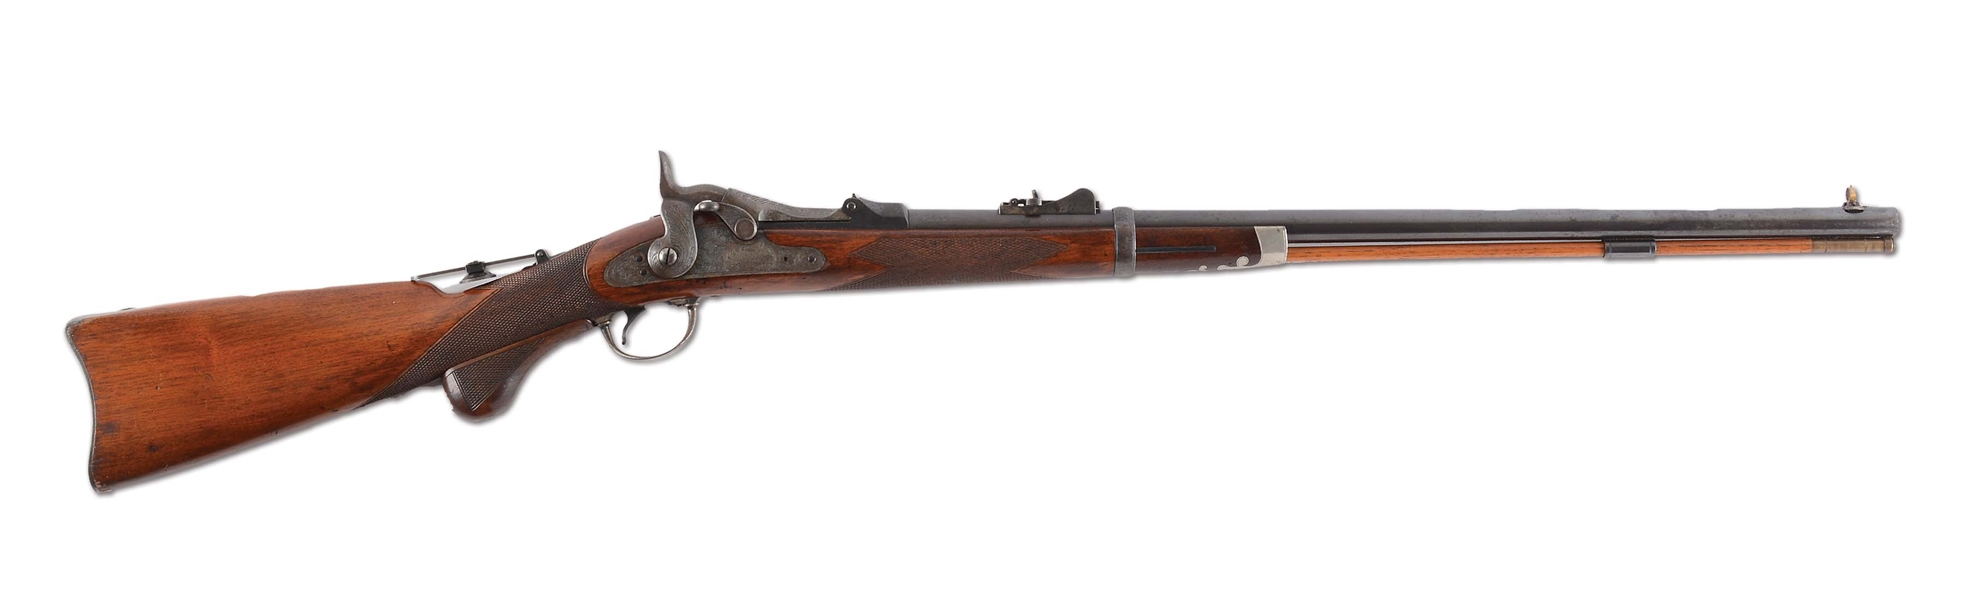 (A)  RARE MODEL 1875 SPRINGFIELD 3RD TYPE OFFICER'S MODEL TRAPDOOR SINGLE SHOT RIFLE. CAL. 45-70.